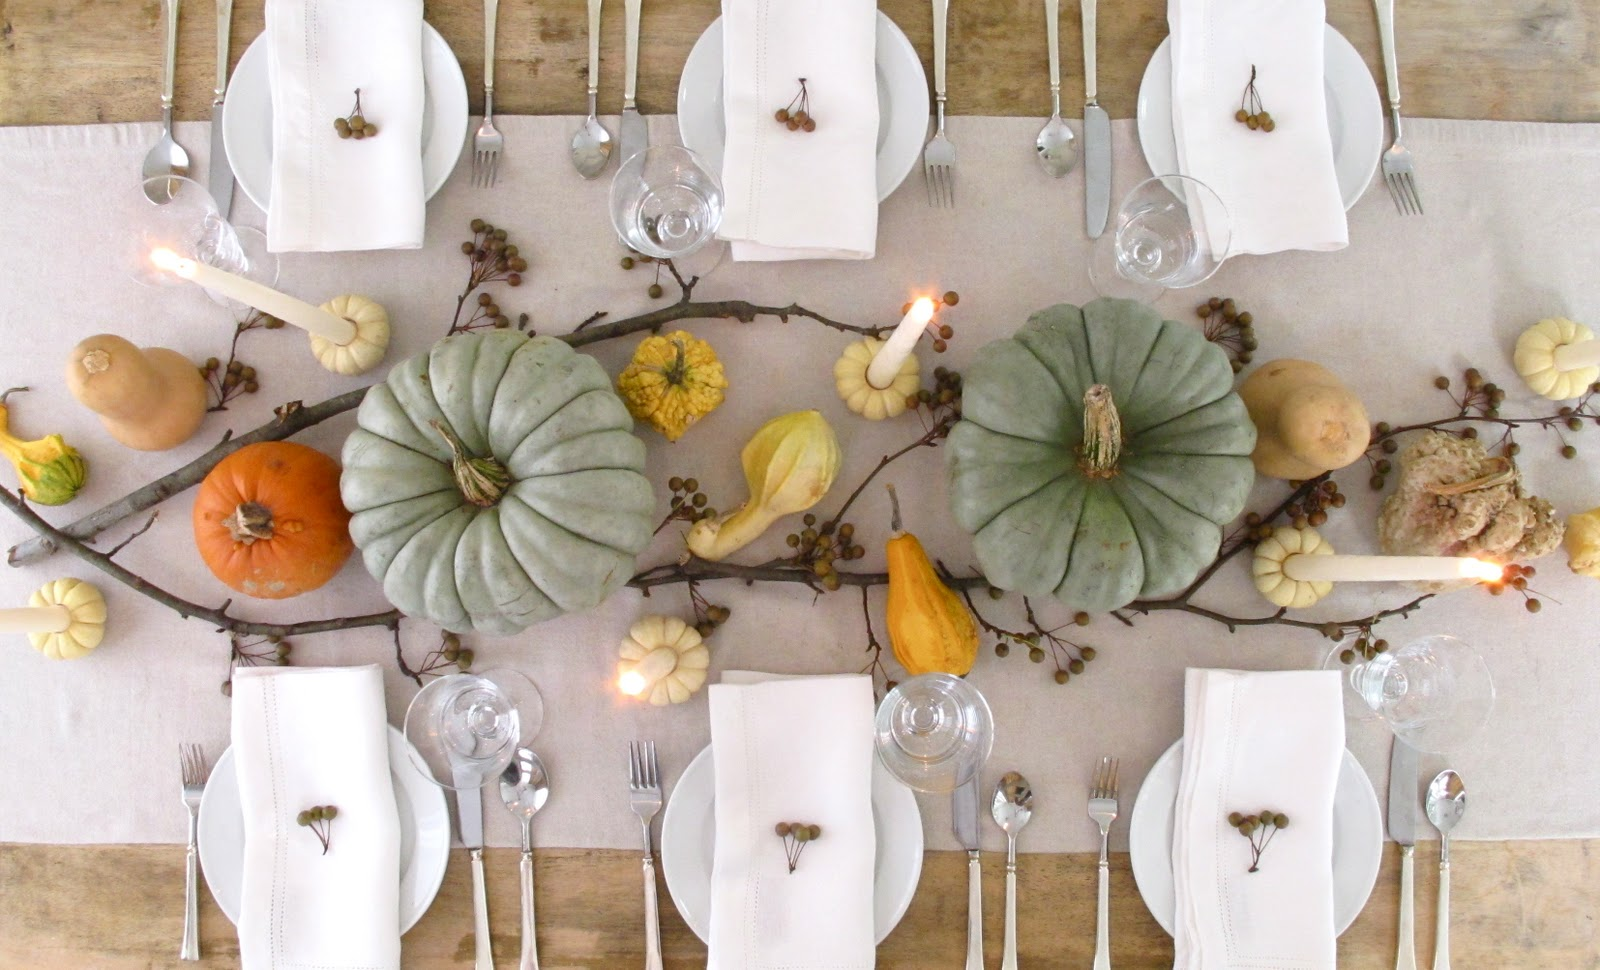 personable-diningroom-decorating-ideas-white-table-skirting-and-pumpkins-centerpieces-white-plates-and-white-napkins-clear-glasses-and-spoons-also-forks-di